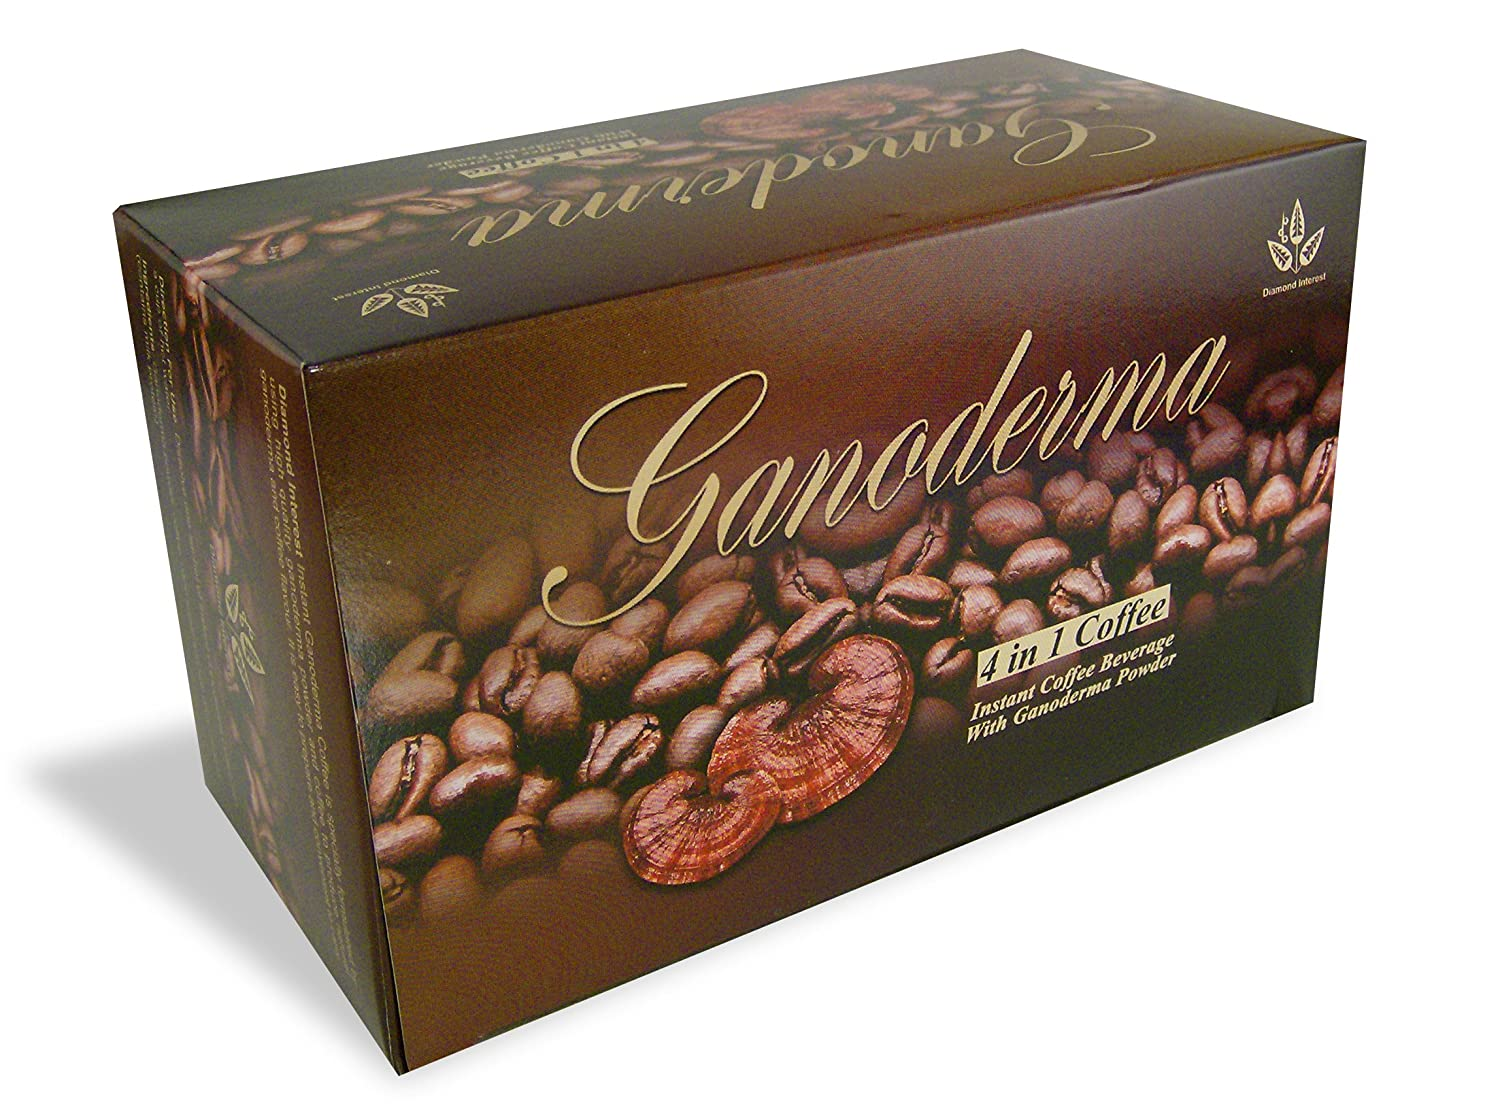 Ganoderma 4 in 1 Tulsa Mall Coffee Free shipping anywhere the nation - of 1260 Sachet per MG